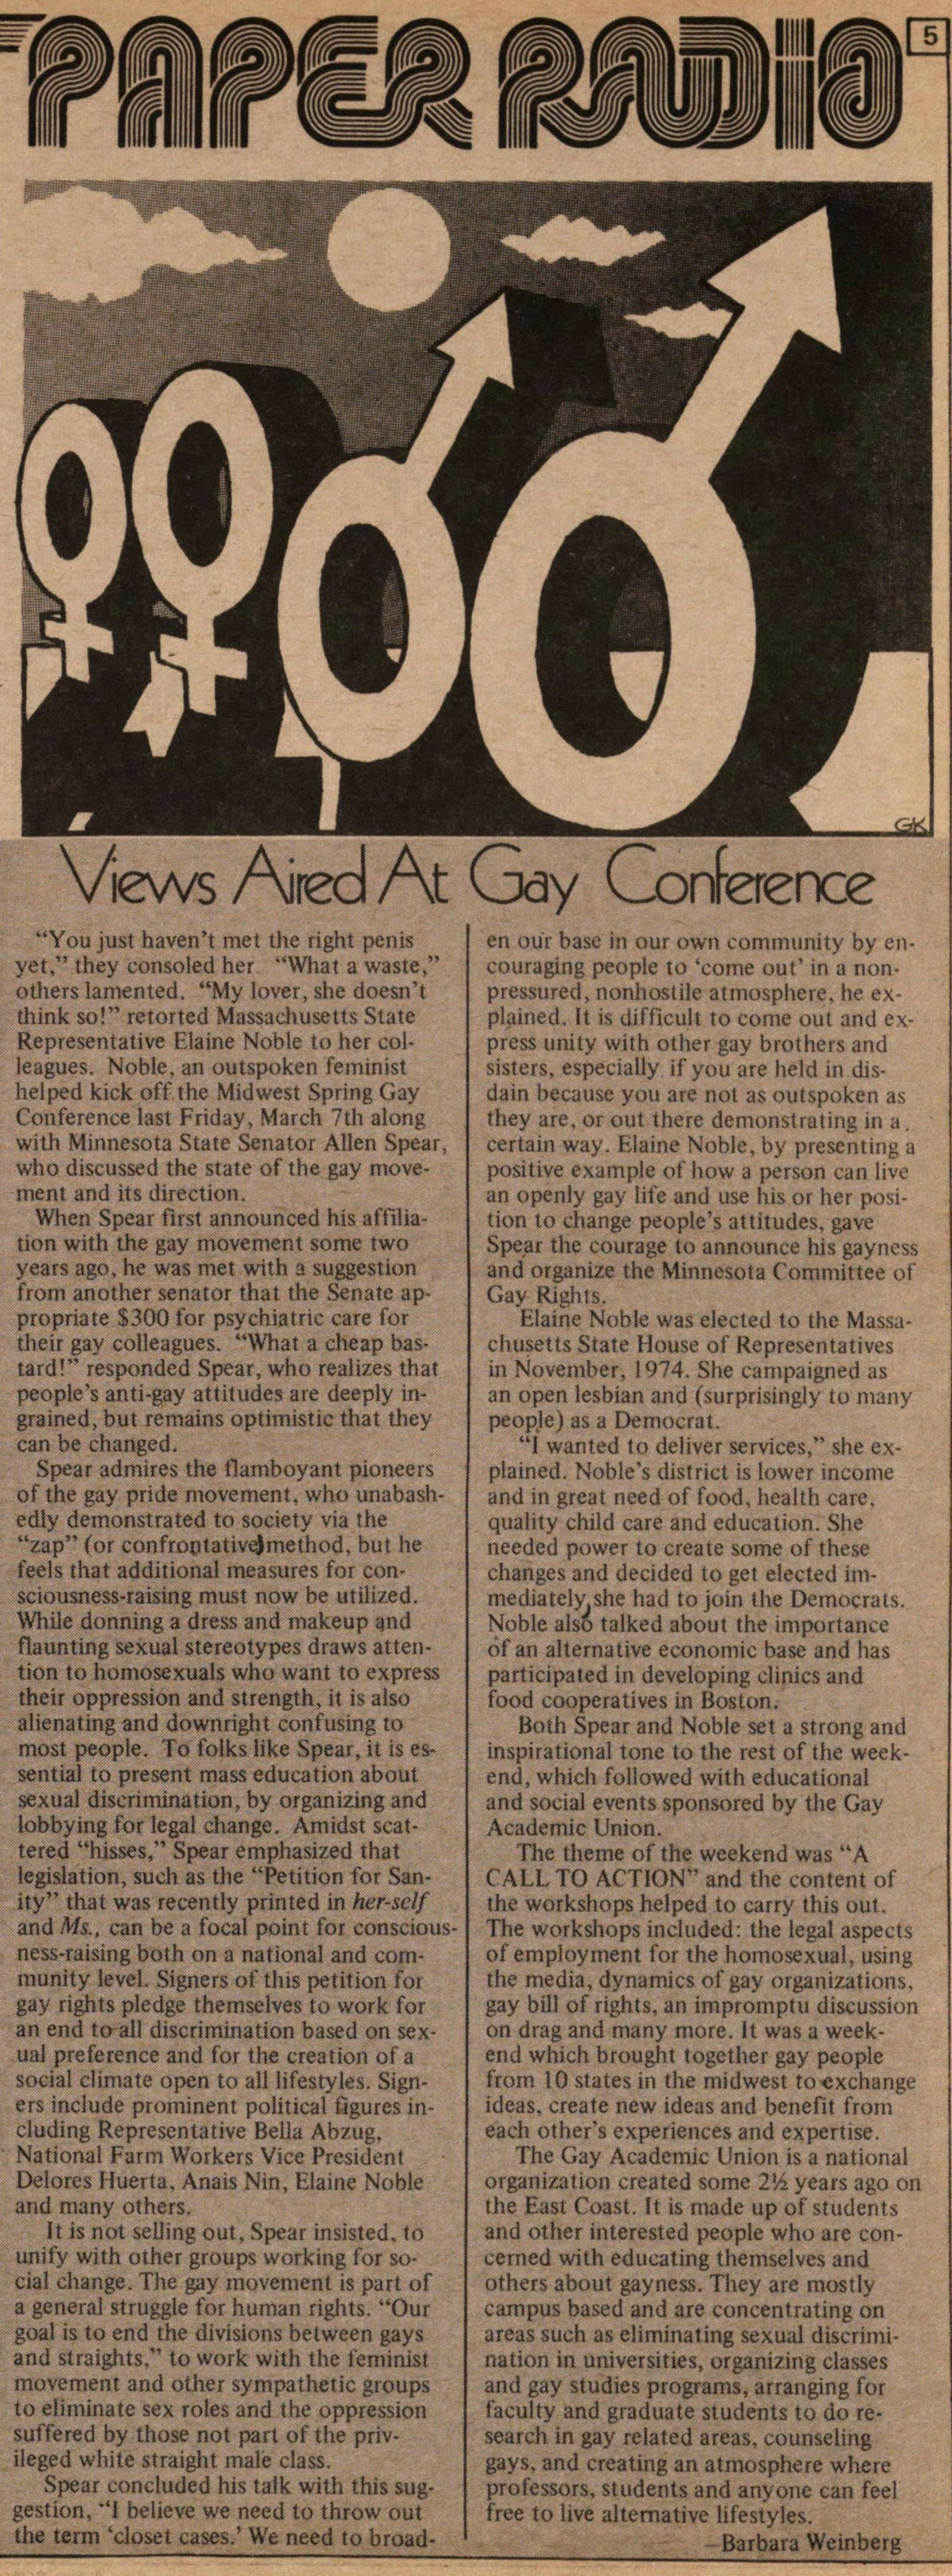 Views Aired At Gay Conference image